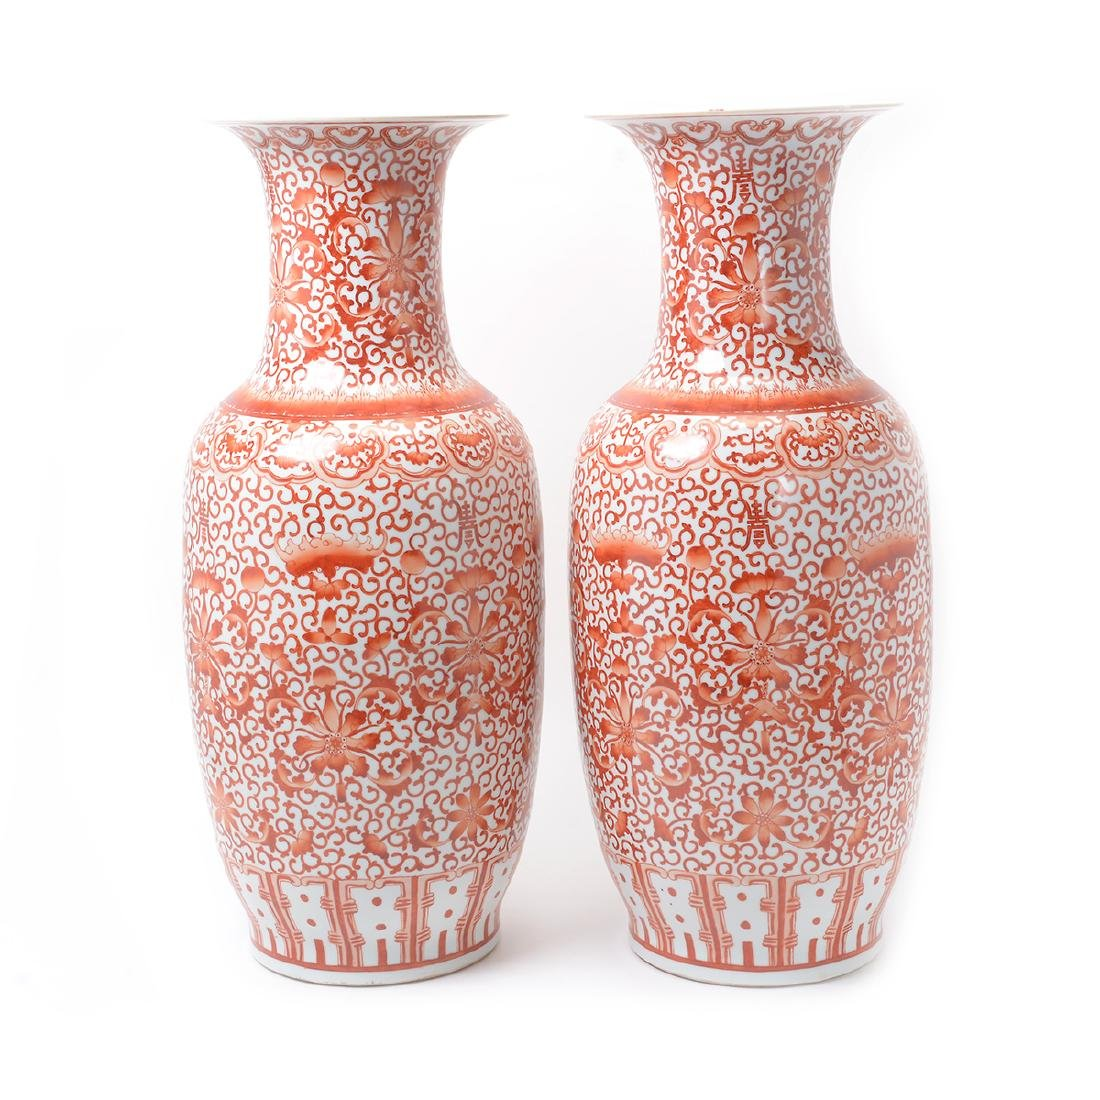 Pair of Large Iron-Red Decorated Vases